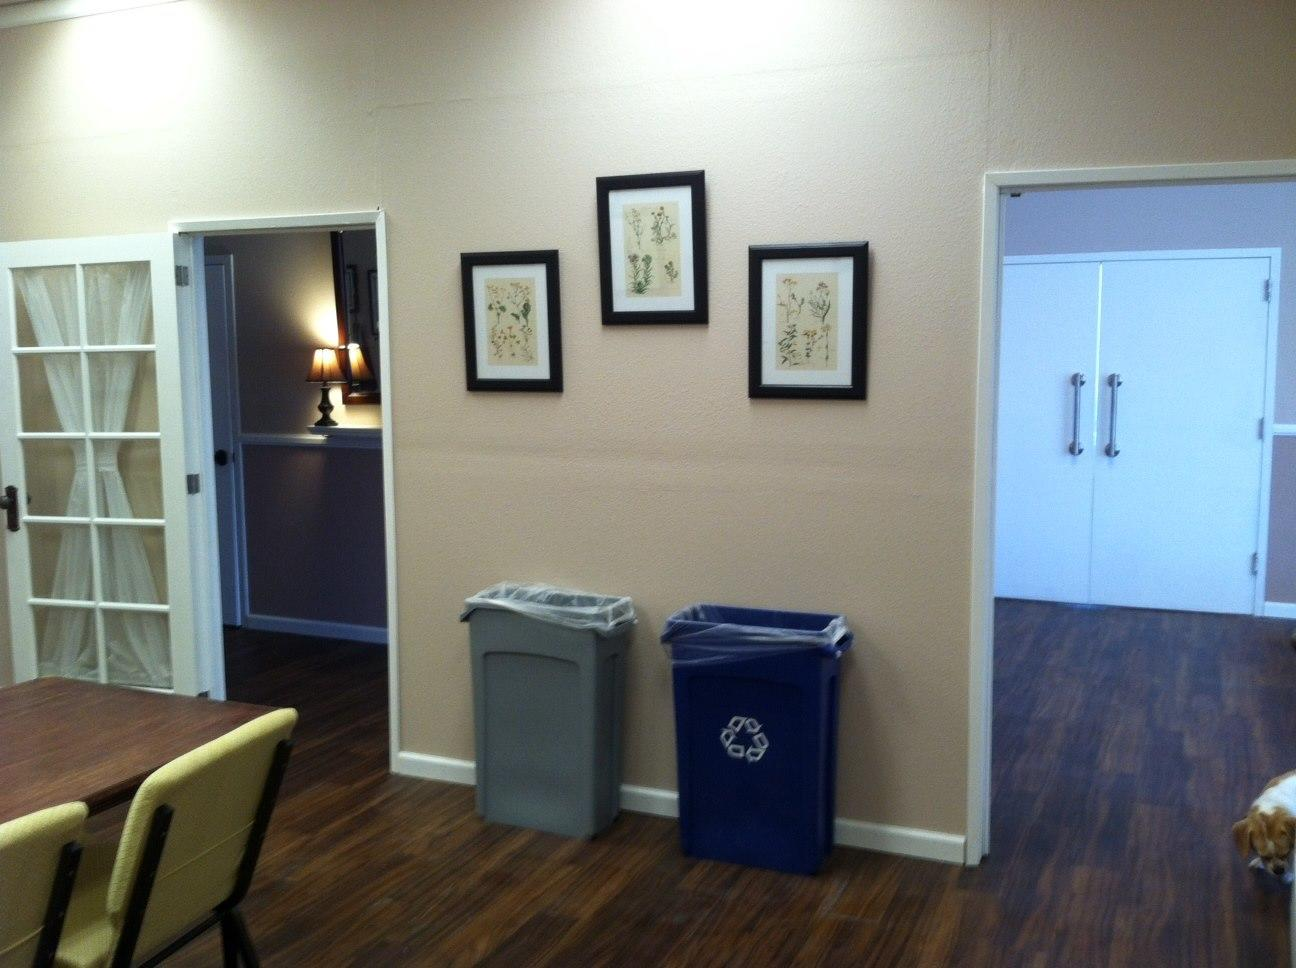 Care Center Cremation & Burial image 4